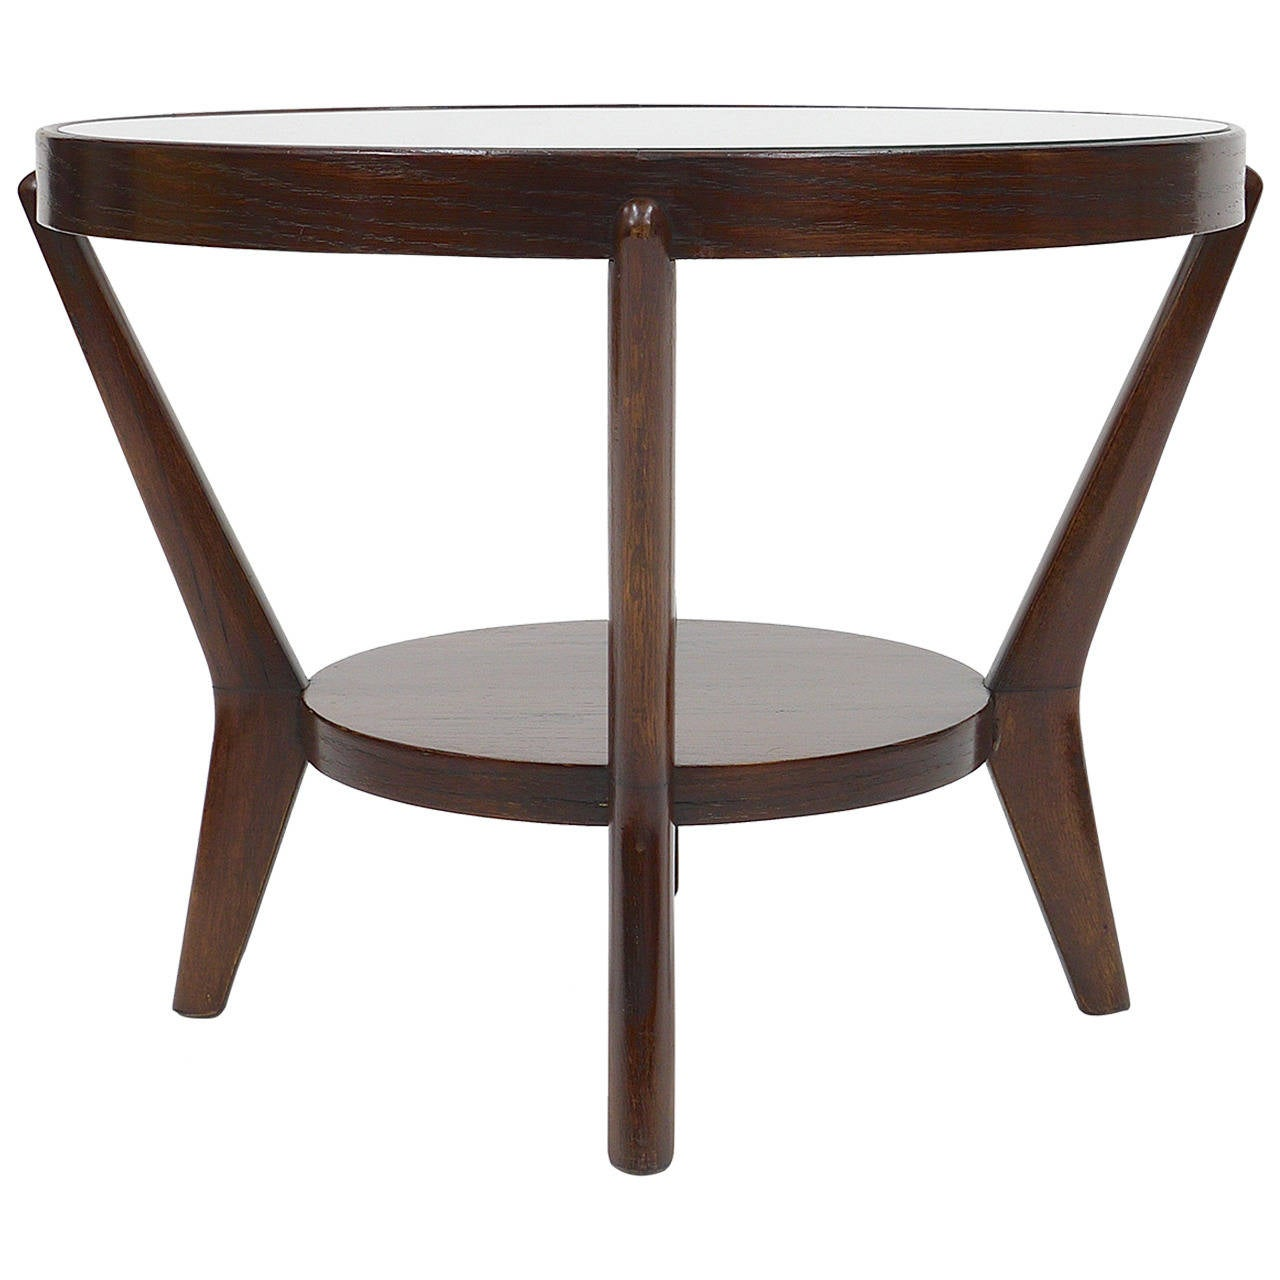 1930s Round Art Deco Side Table by Jindrich Halabala, Excellent Condition